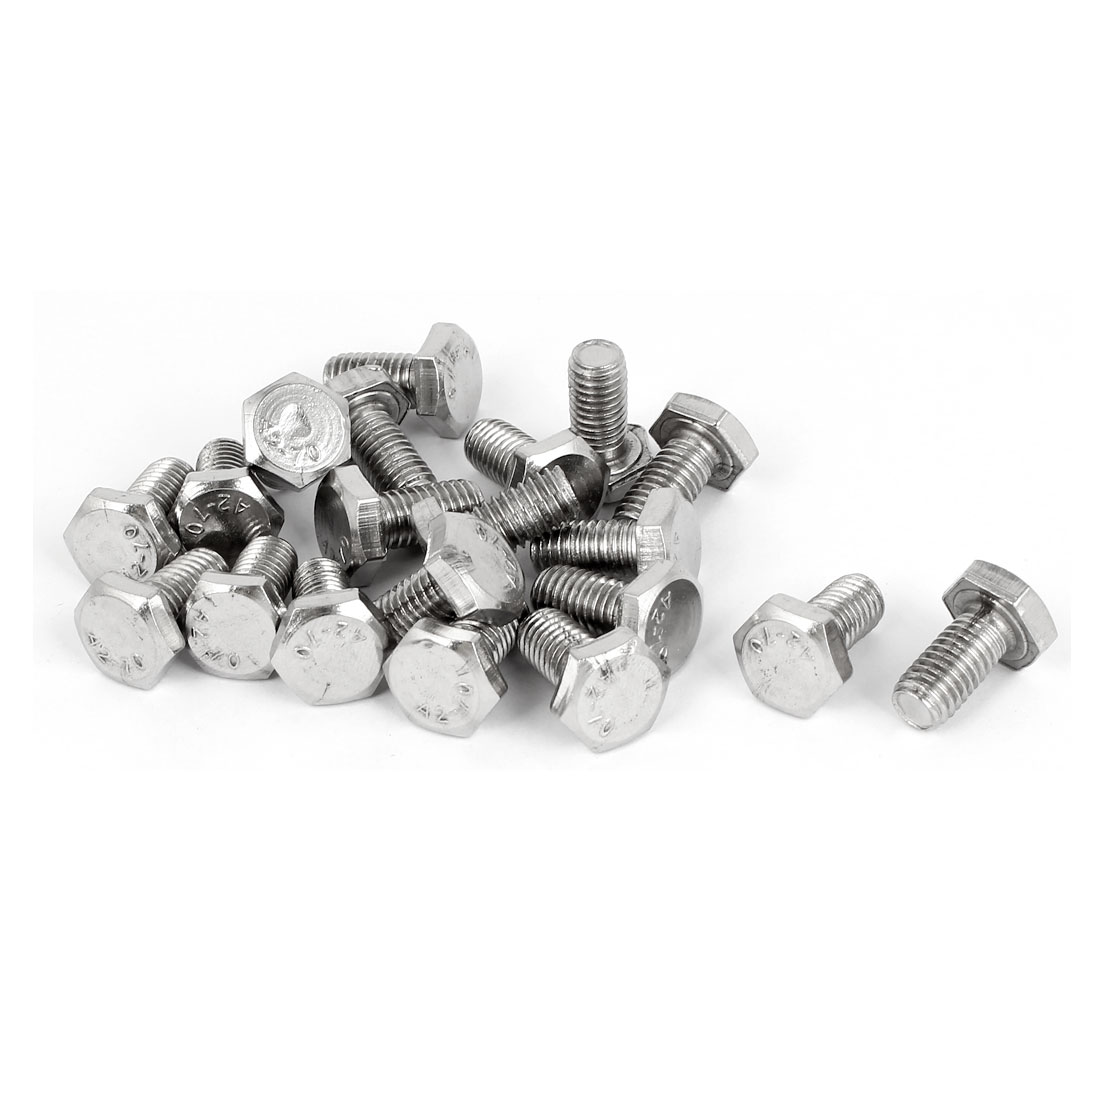 M8 x 16mm Stainless Steel Fully Thread Hex Hexagon Screws Bolts DIN 933 20PCS